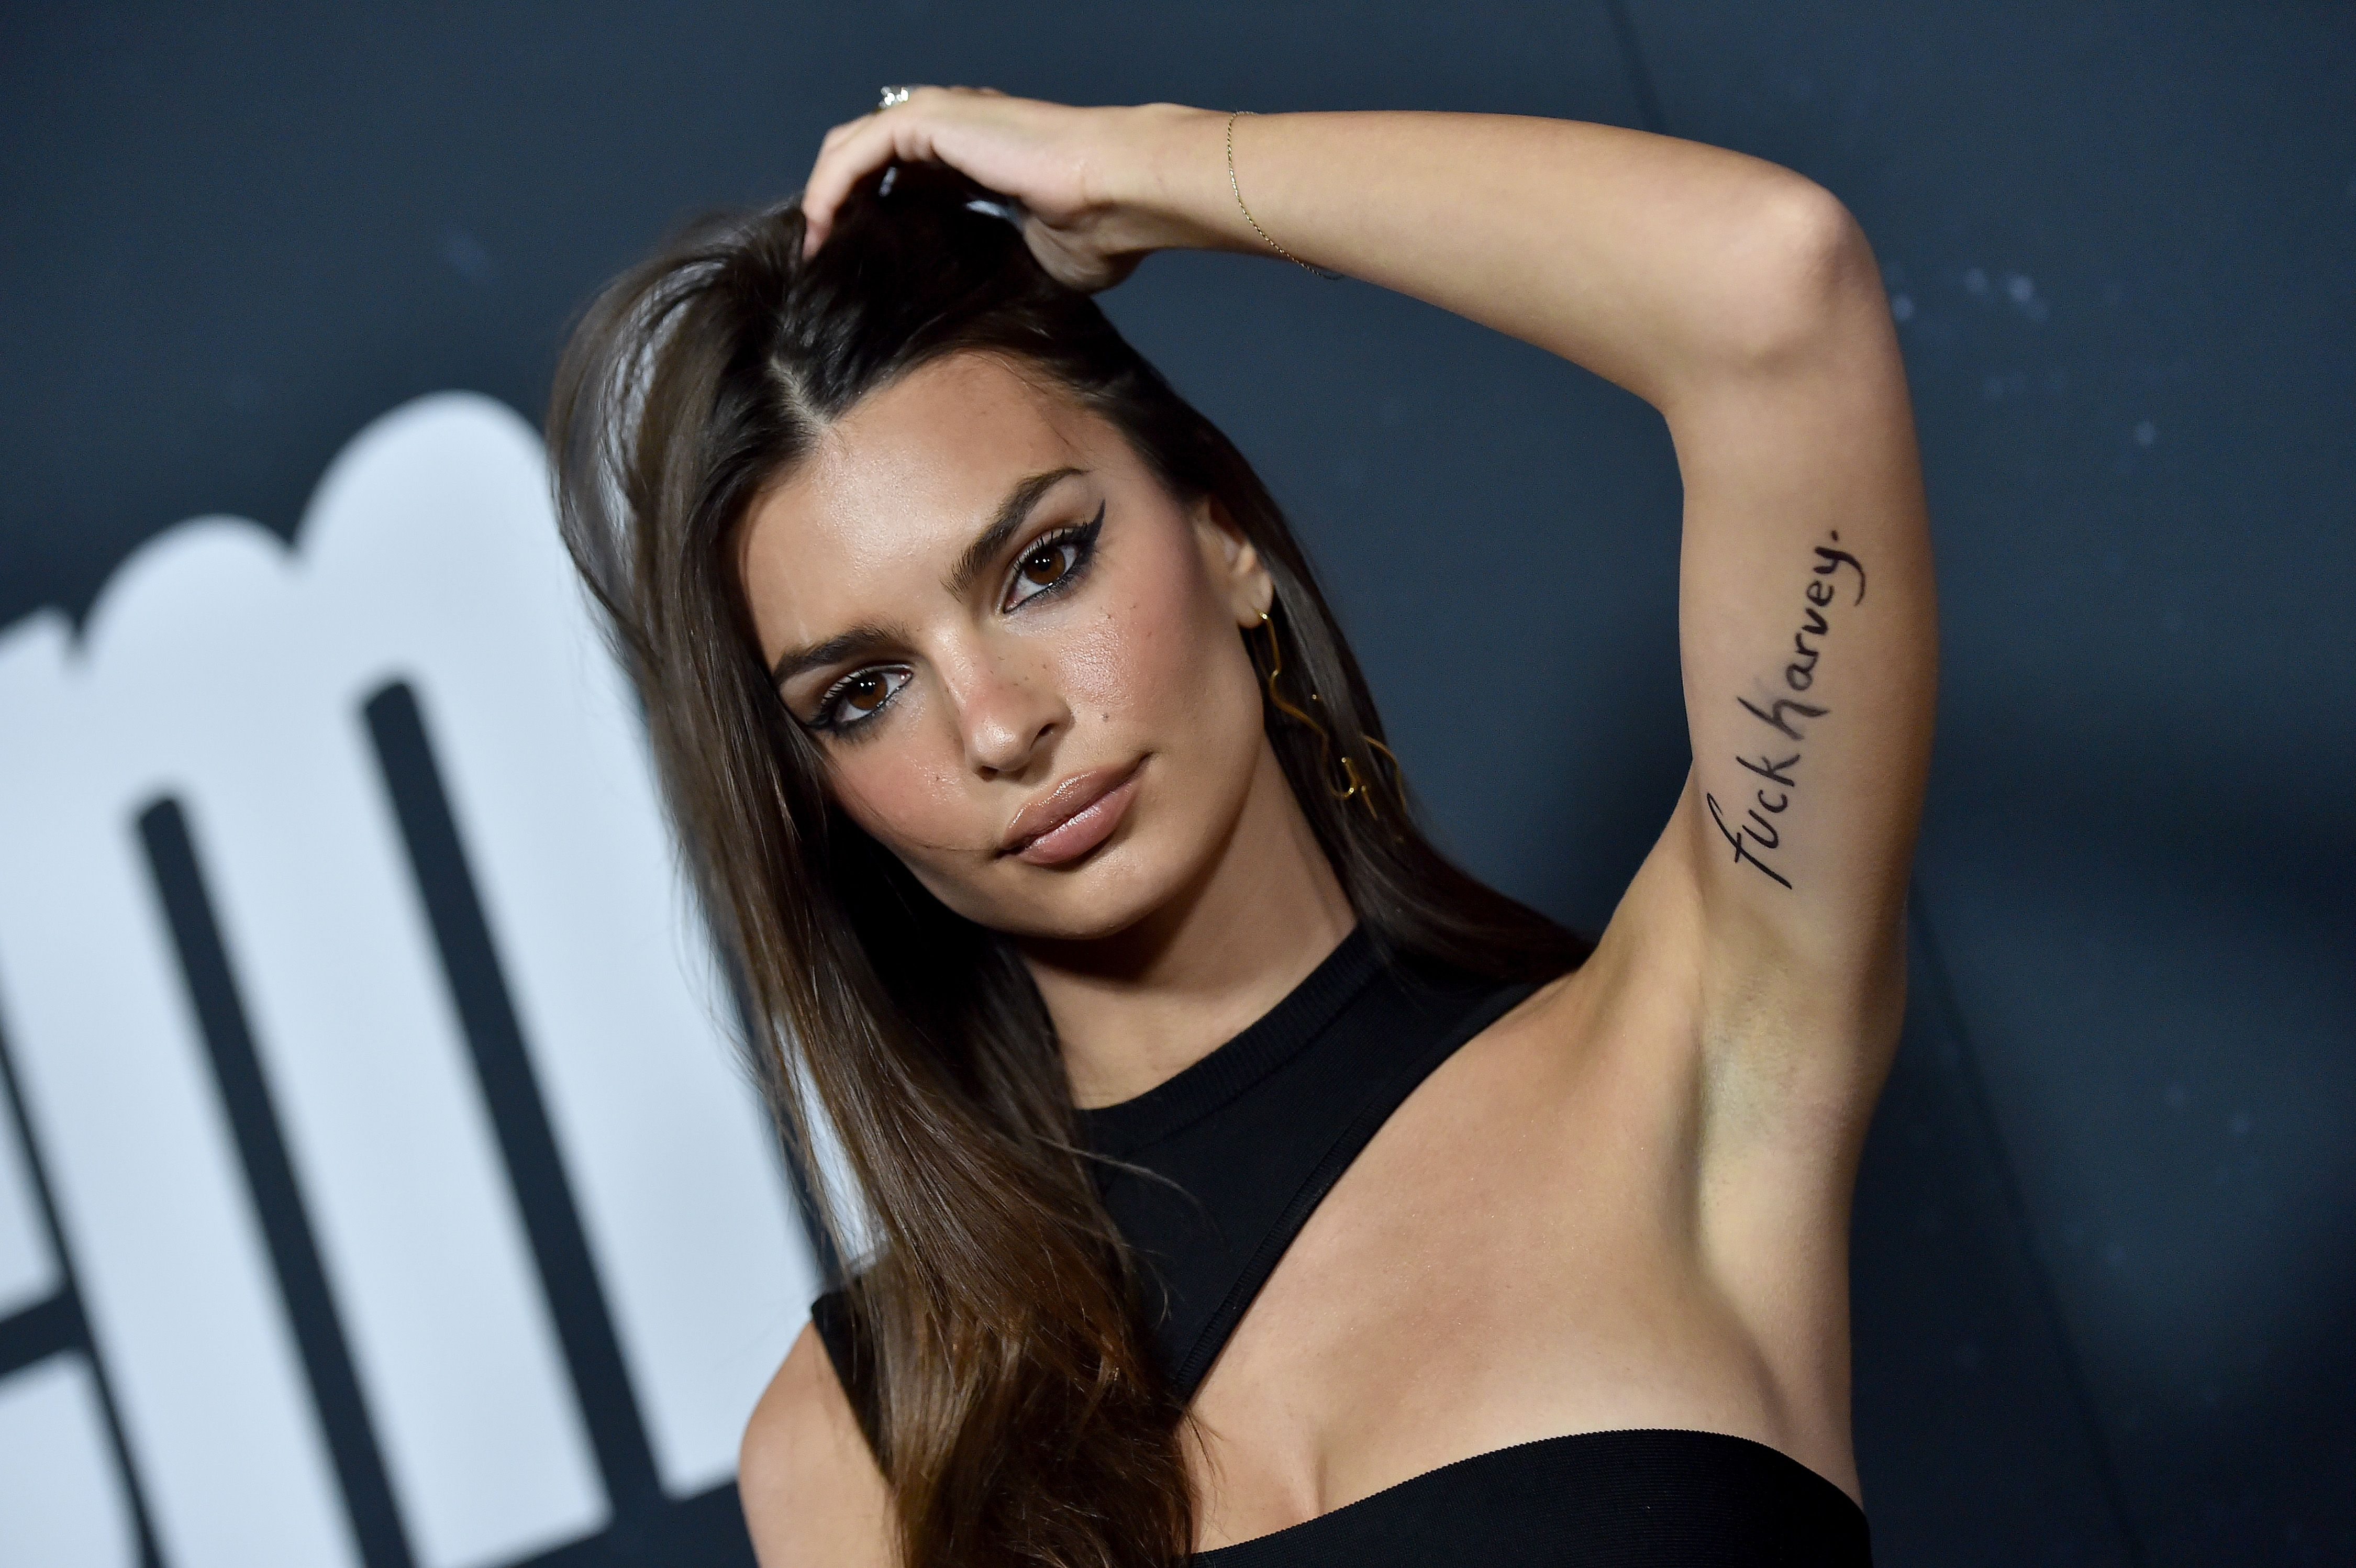 Emily Ratajkowski Walks The Red Carpet With 'F*** Harvey' Inking After Weinstein Settlement Is Revealed